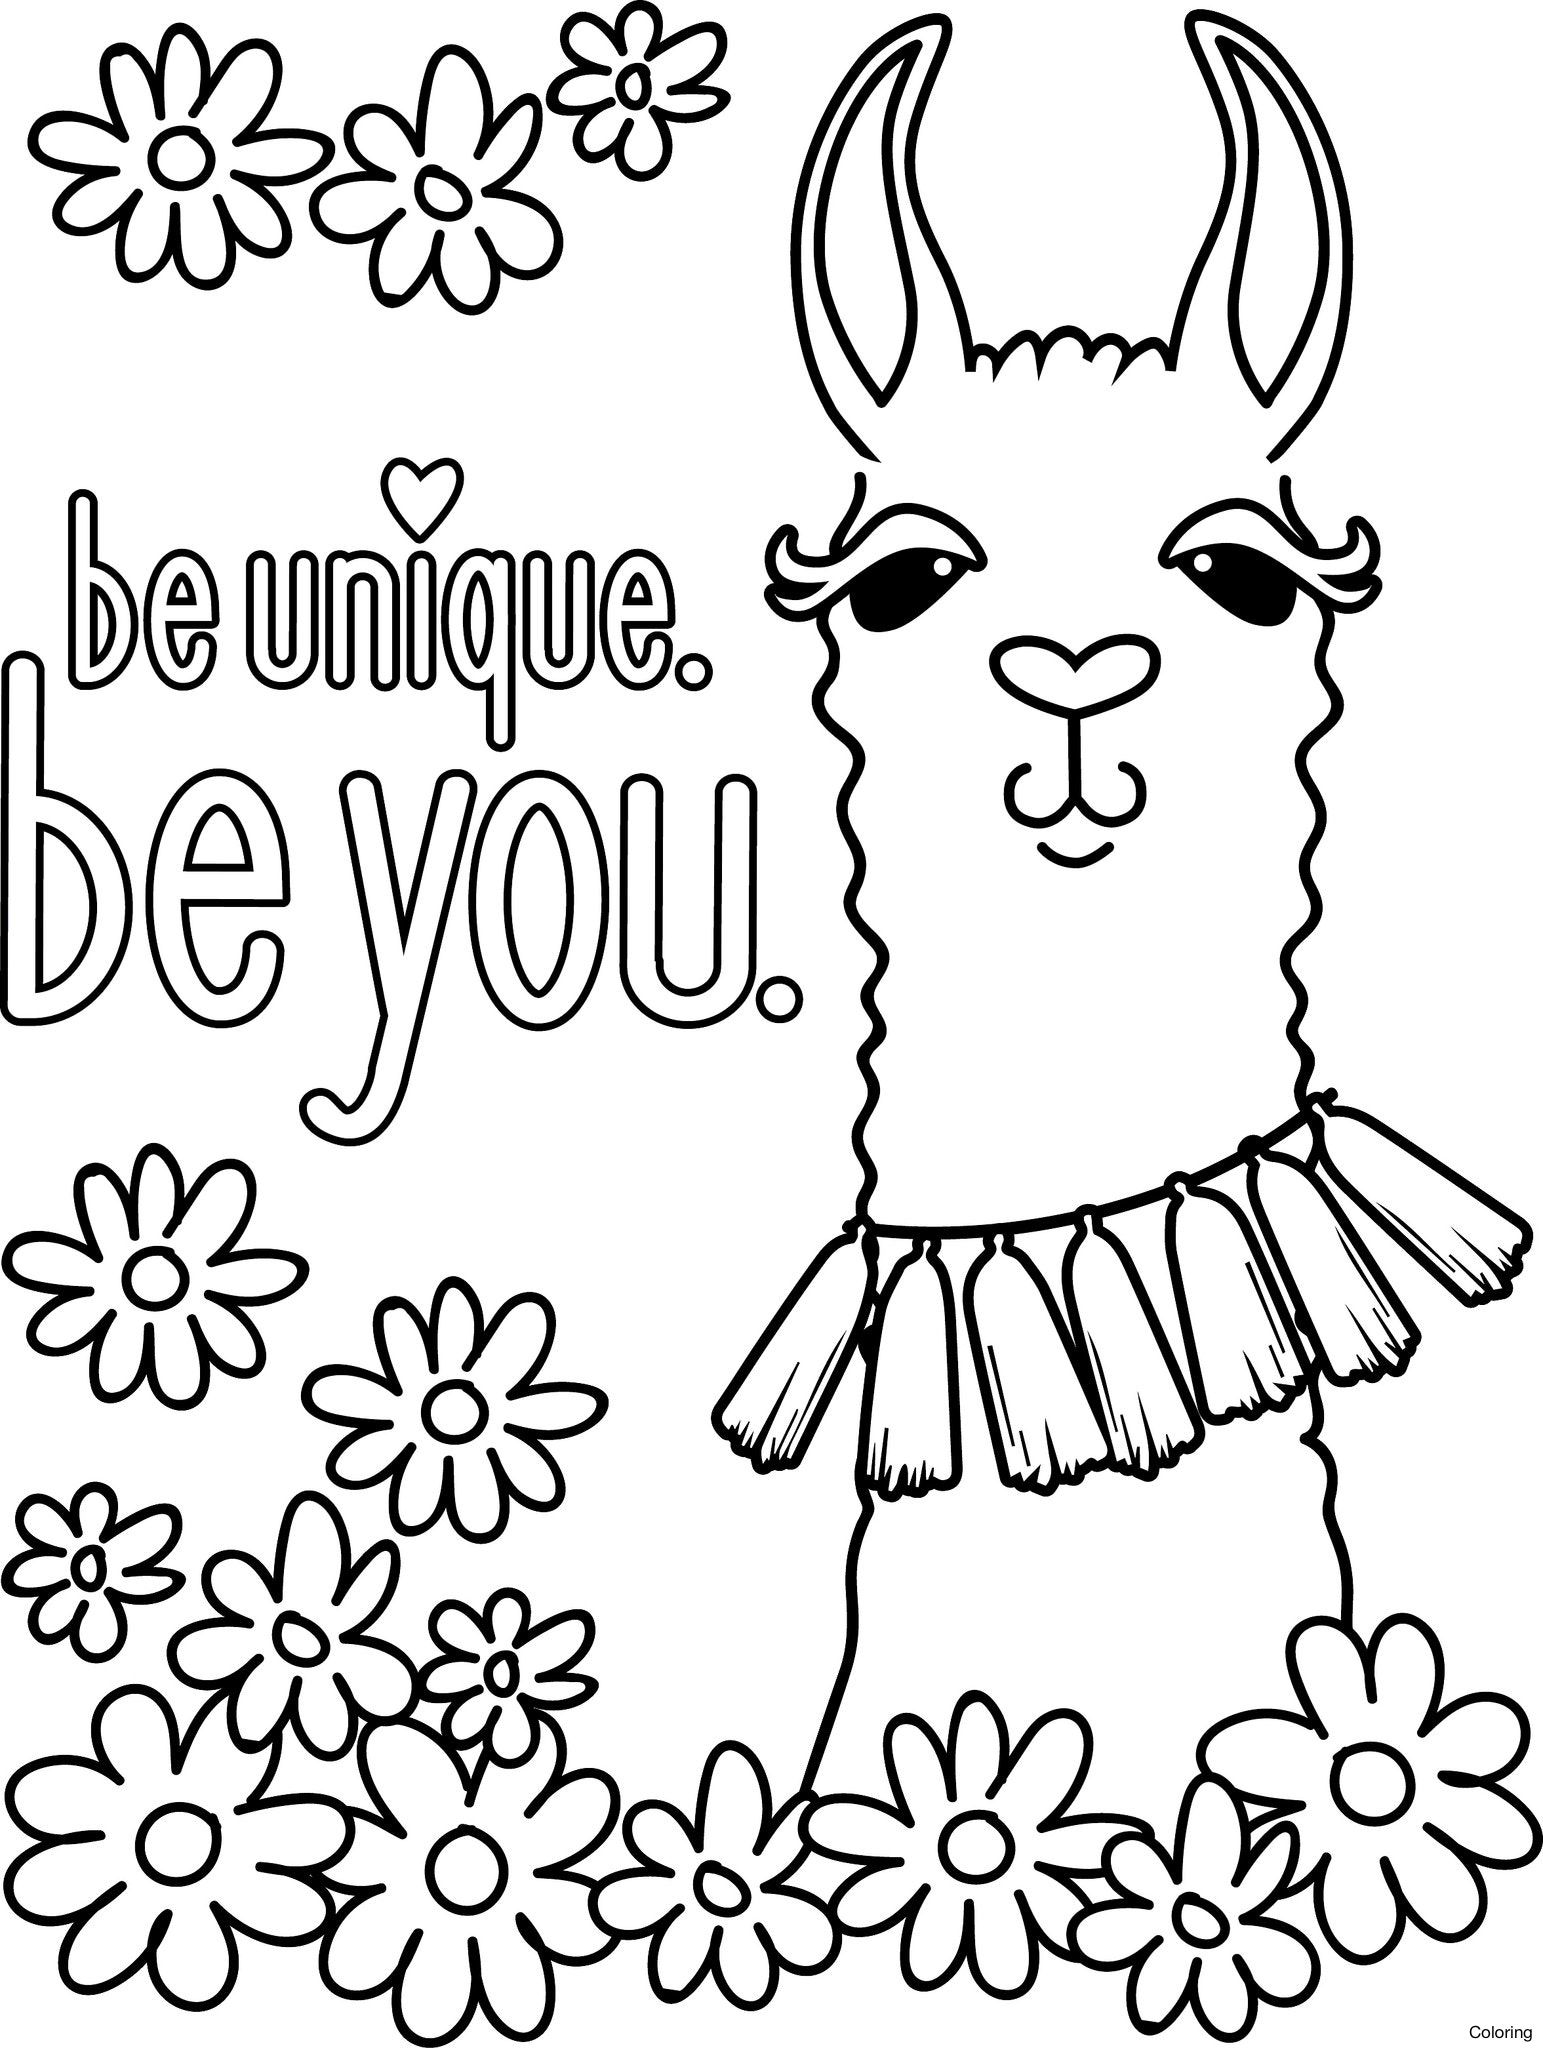 Animal Llama Print Coloring Pages 5f Funny Of Free Diaiz Daisy